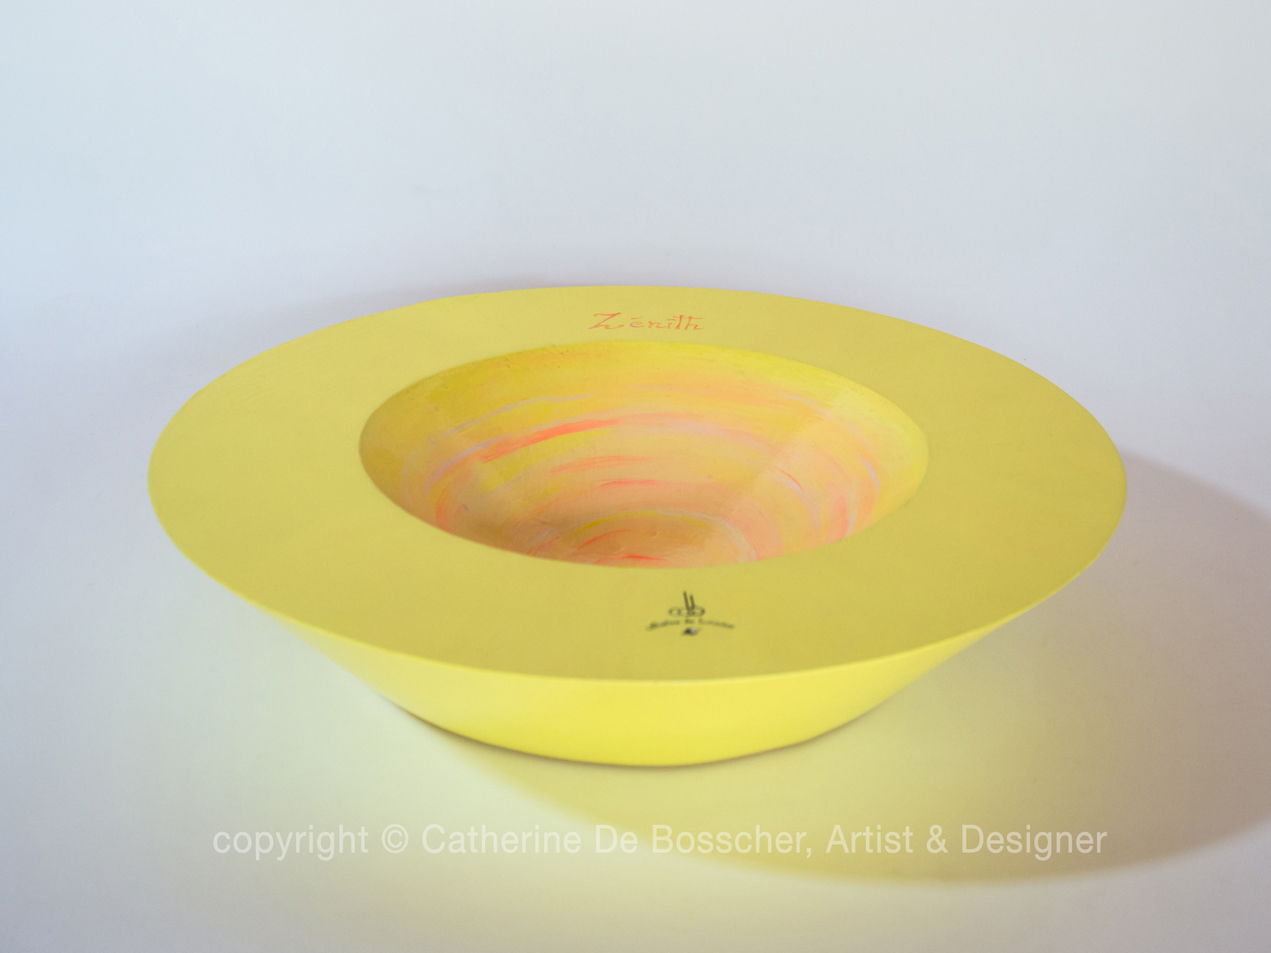 "Sculptural Bowl ""Zenith"" by Catherine De Bosscher"